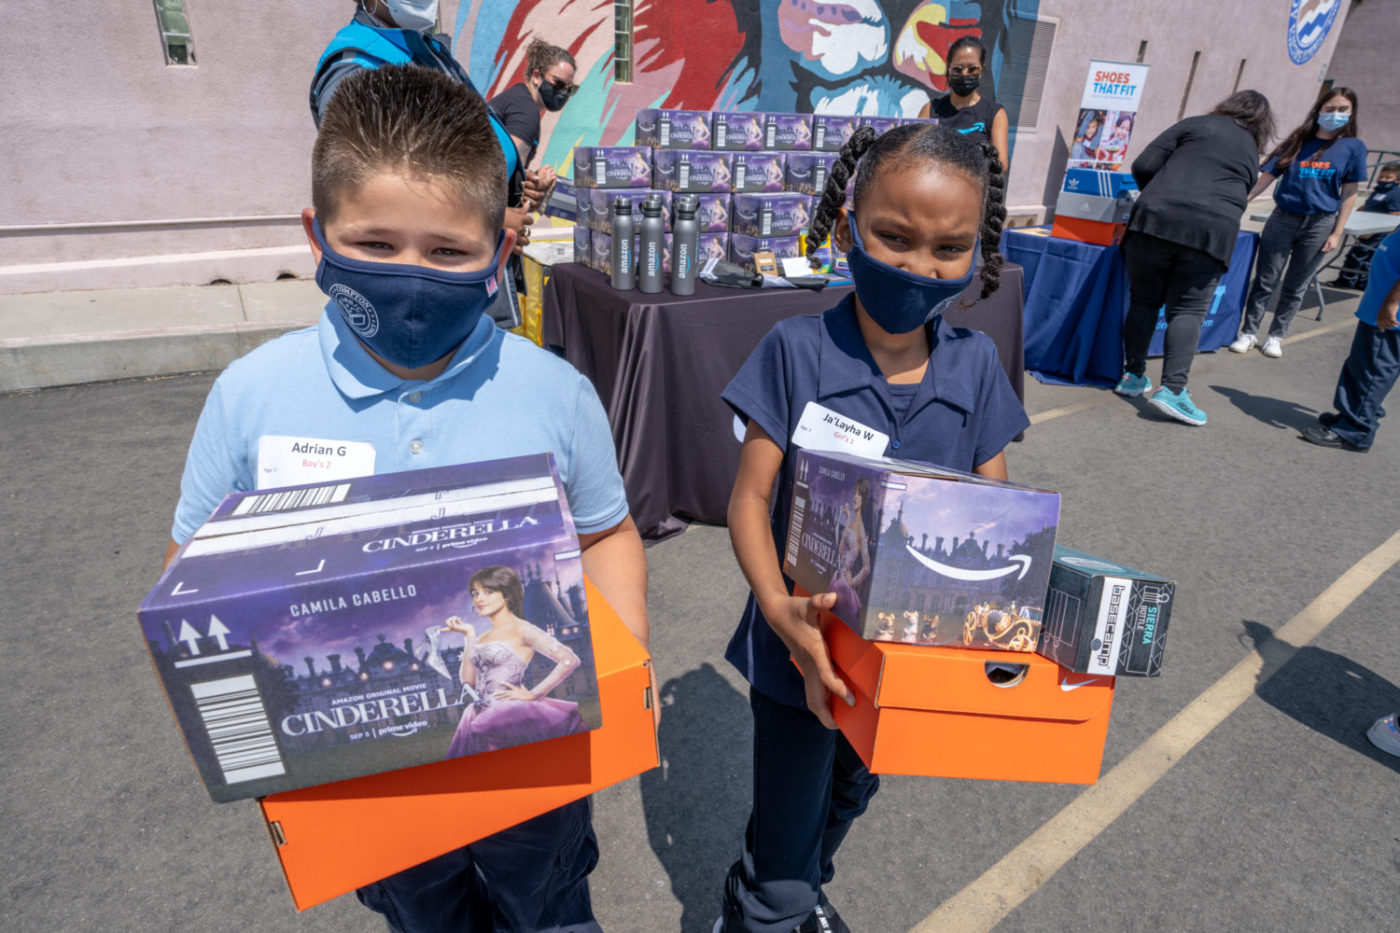 Students-at-Bret-Harte-Elementary-in-Bayview-receive-Cinderella-stuff-from-Amazon-091321-1400x933, Daphne Young's eye on education: 'What's going on?', Local News & Views